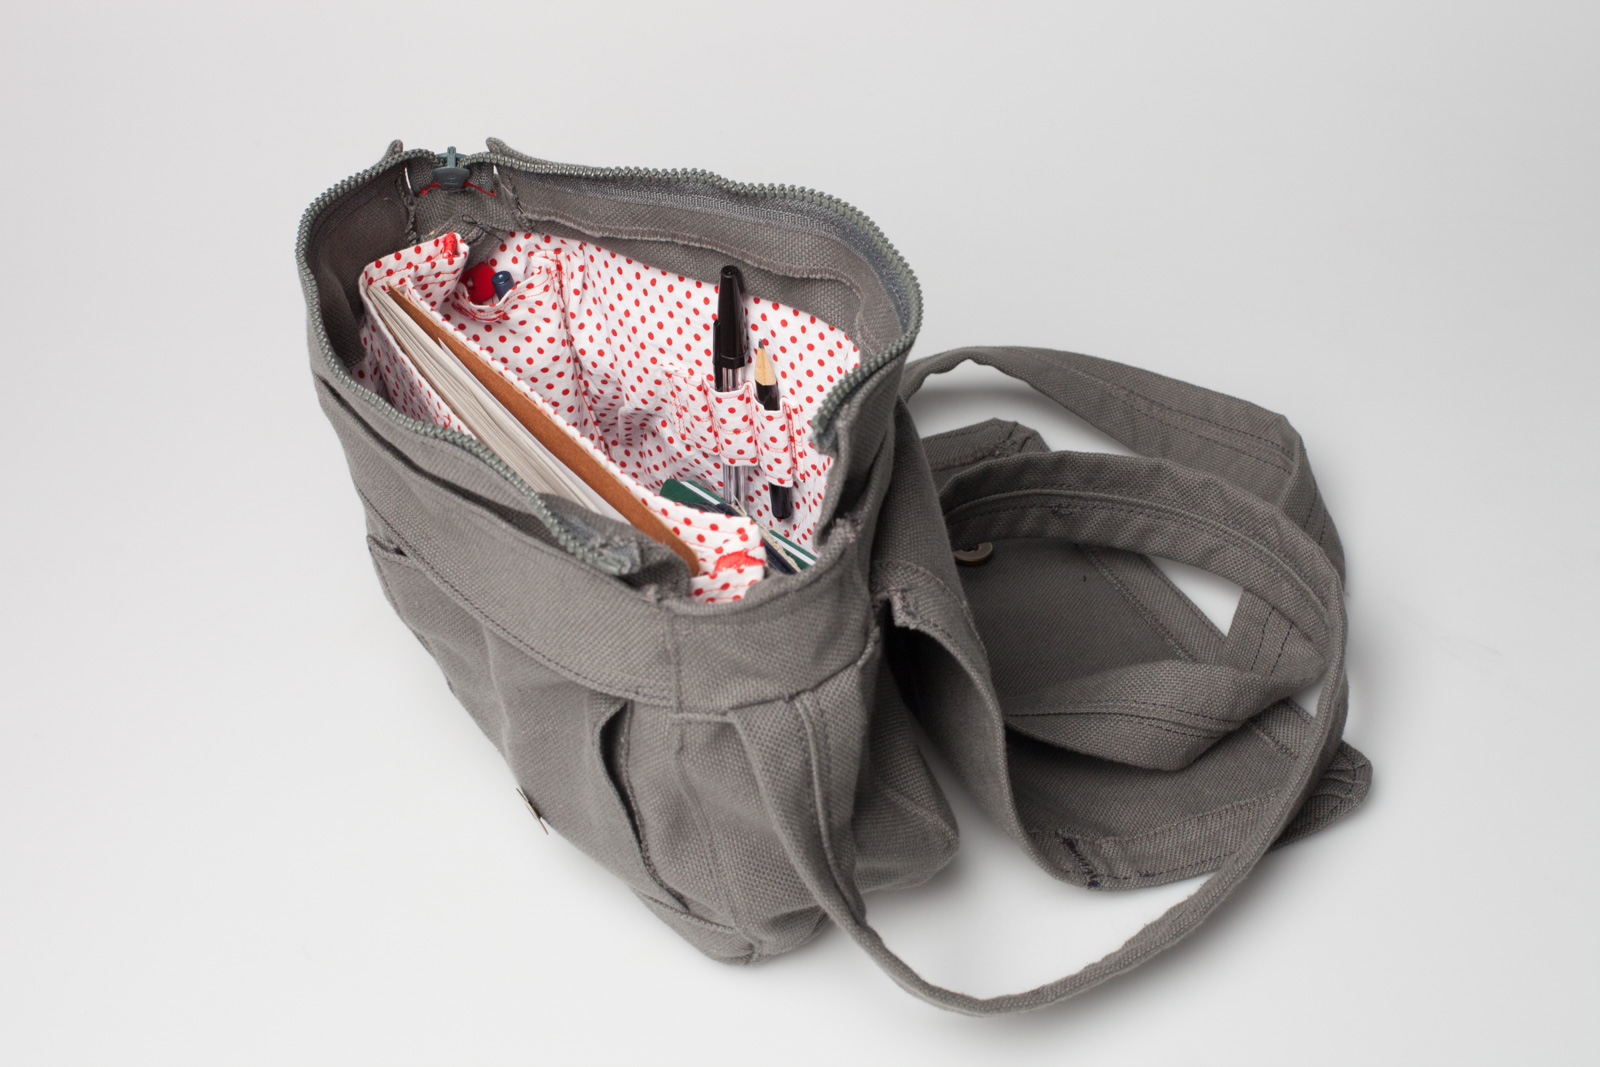 a simple fabric handbag – open, you can see the white with red dots inlay and a few pens and books on the inside